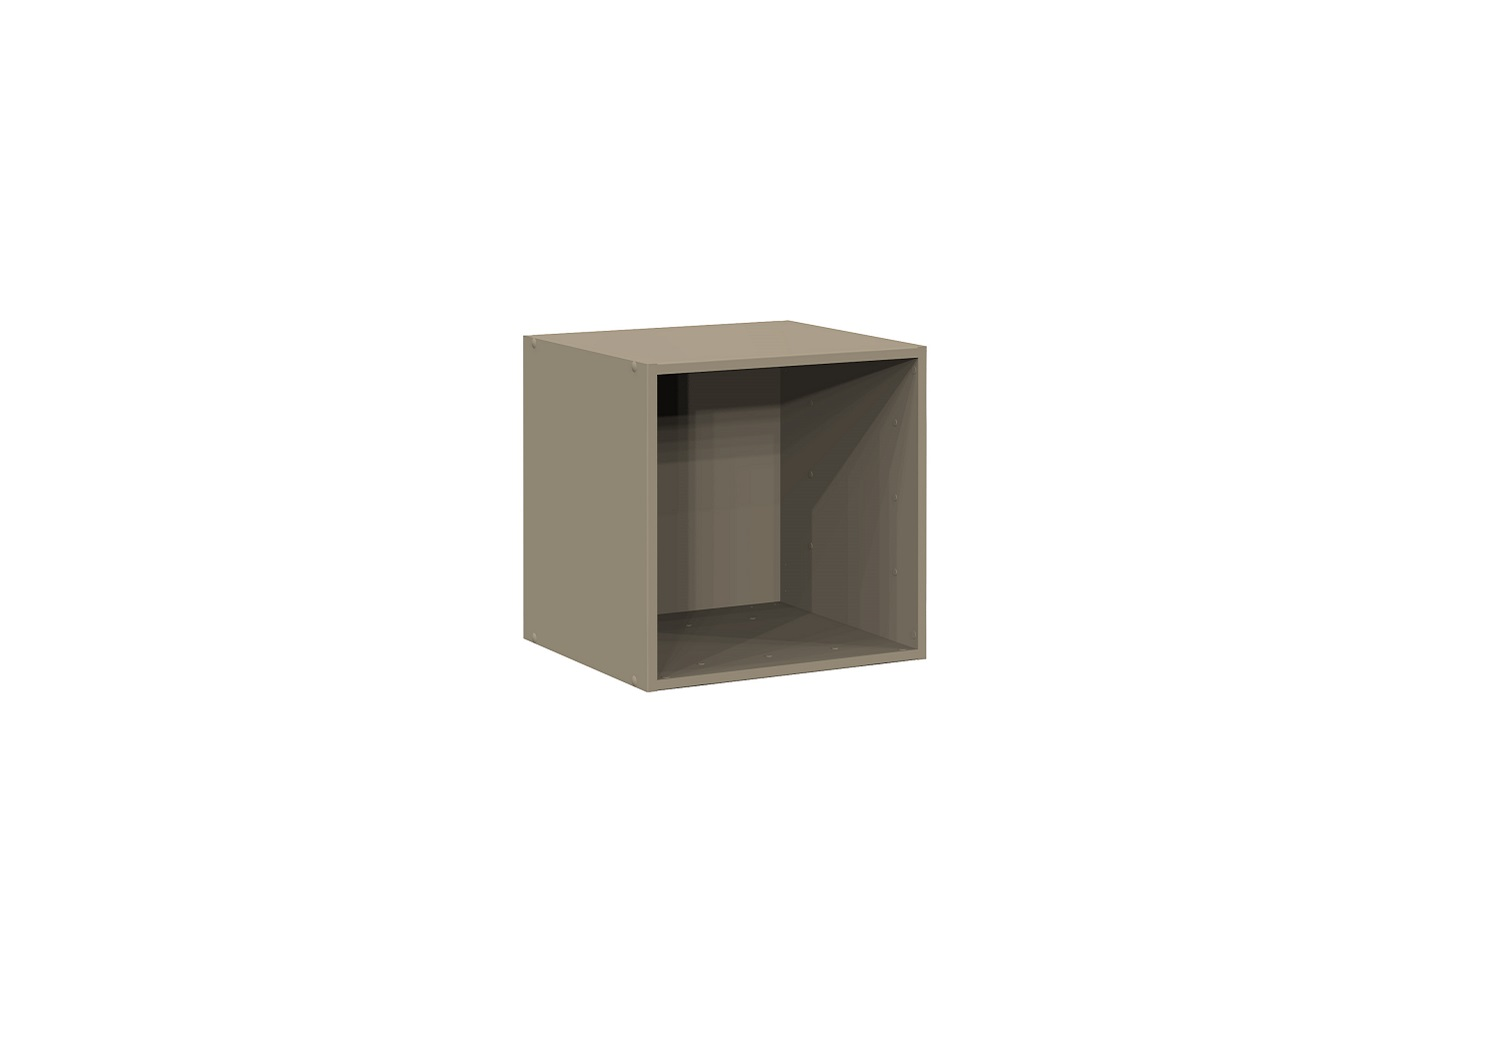 Bilrich Storage Furniture - Multi Kaz 1x1 Cube Taupe